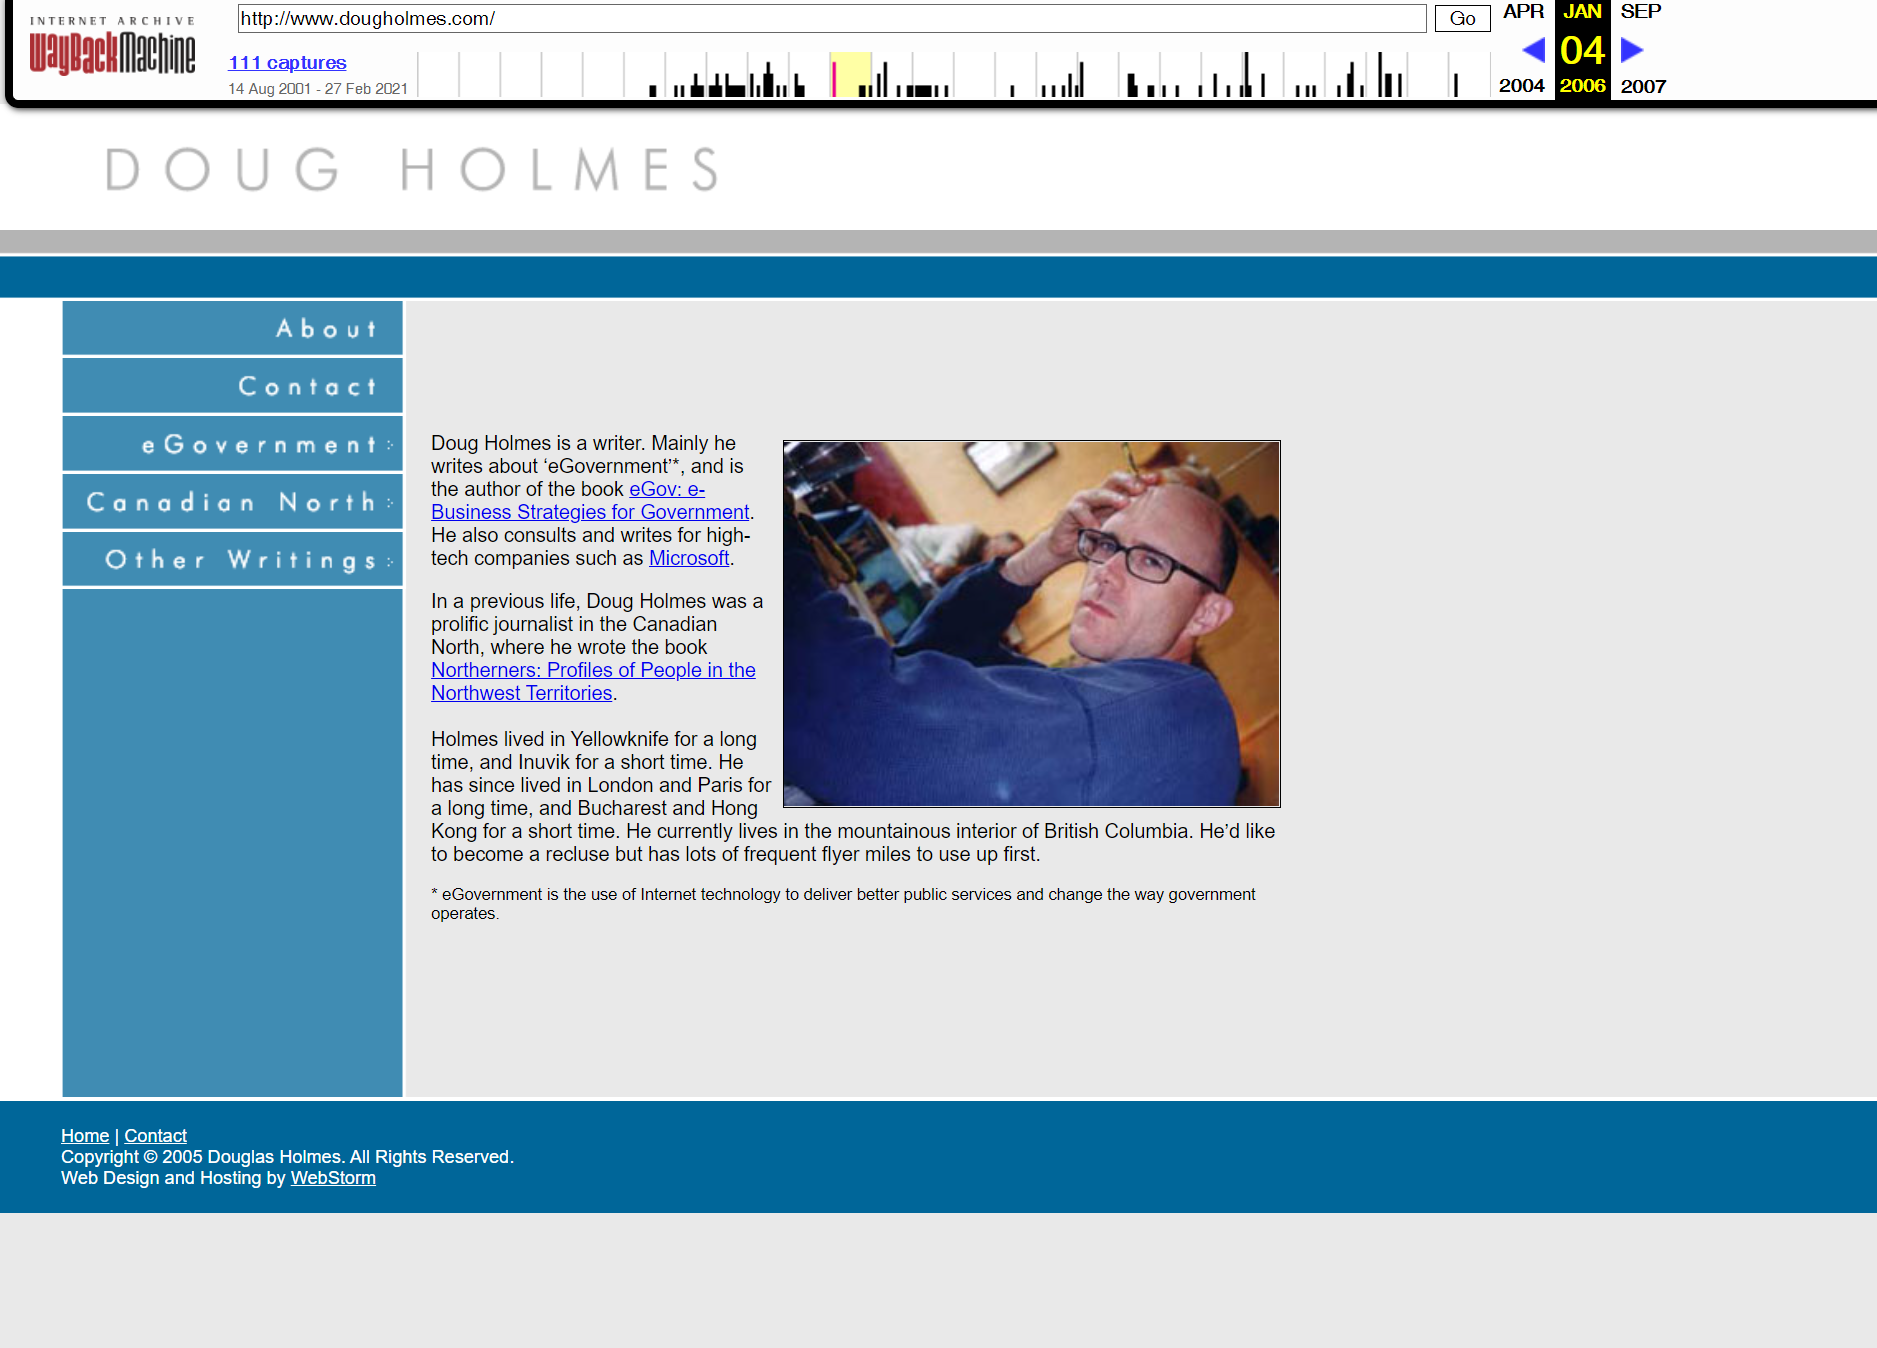 This site looked like it was from 1999 in 2005, and it still does. BLUE, CORPORATE